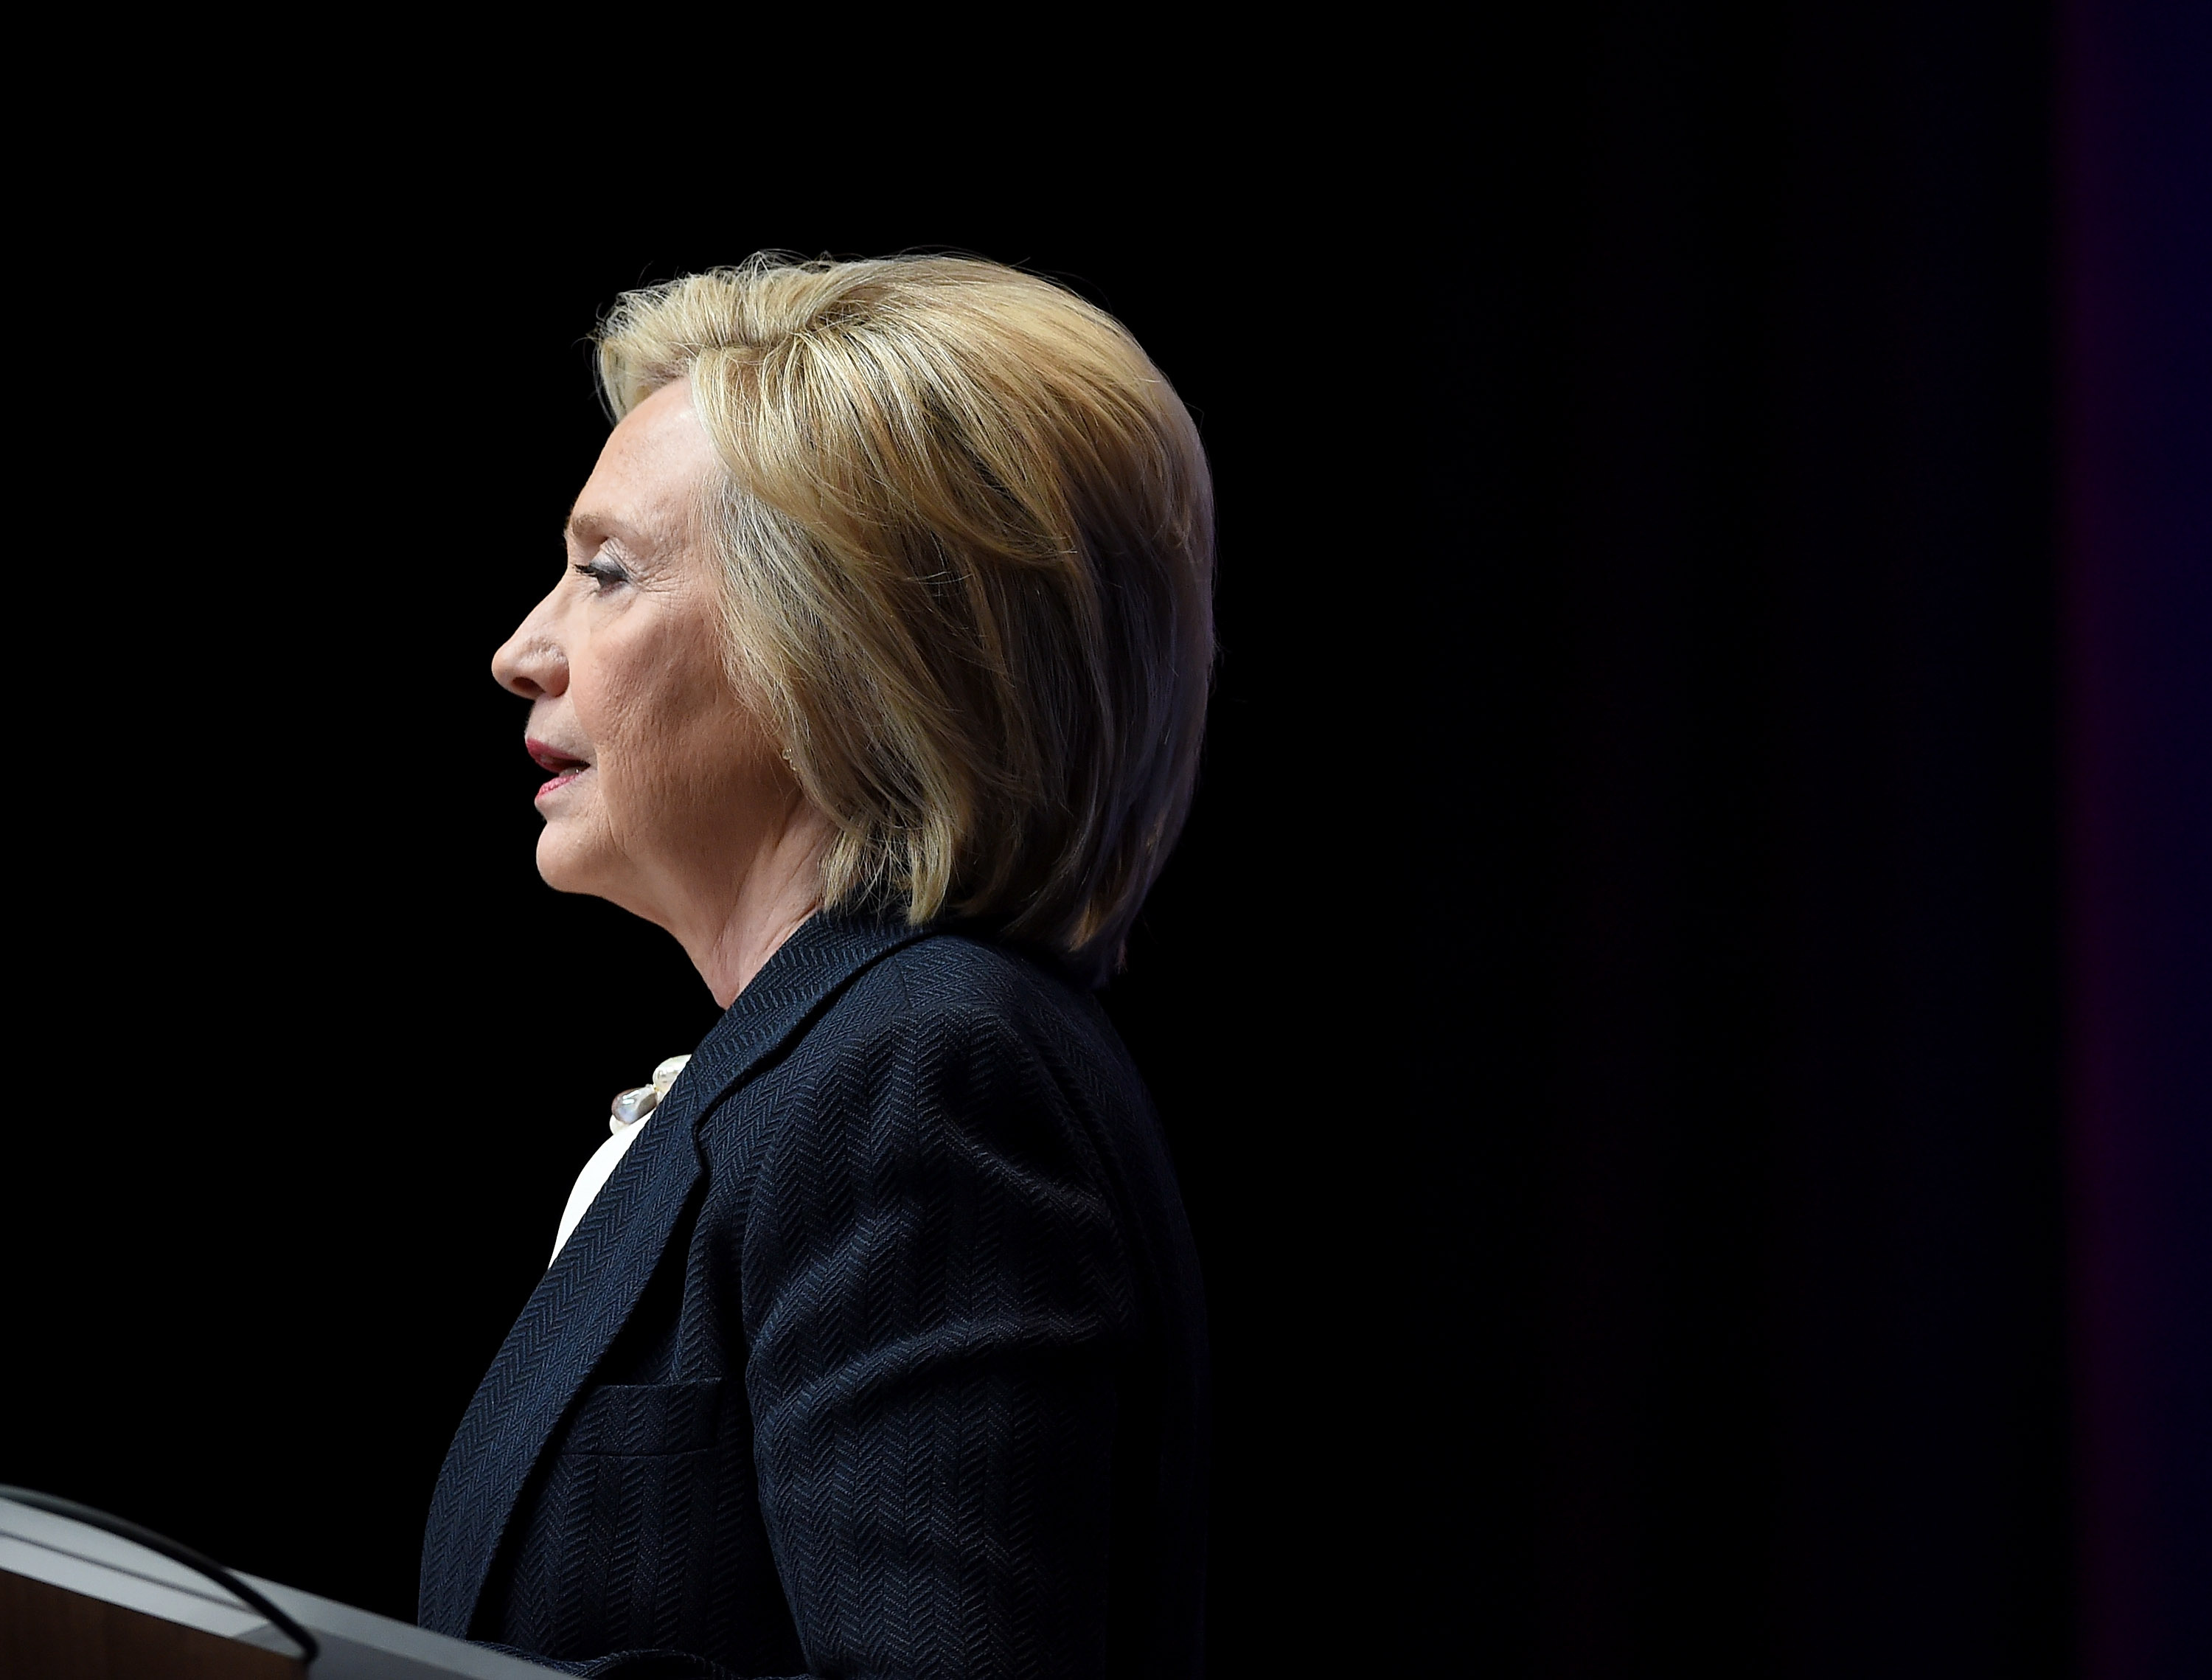 Democratic presidential candidate and former U.S. Secretary of State Hillary Clinton speaks at the National Association of Latino Elected and Appointed Officials' (NALEO) 32nd Annual Conference at the Aria Resort & Casino at CityCenter on June 18, 2015 in Las Vegas, Nevada.